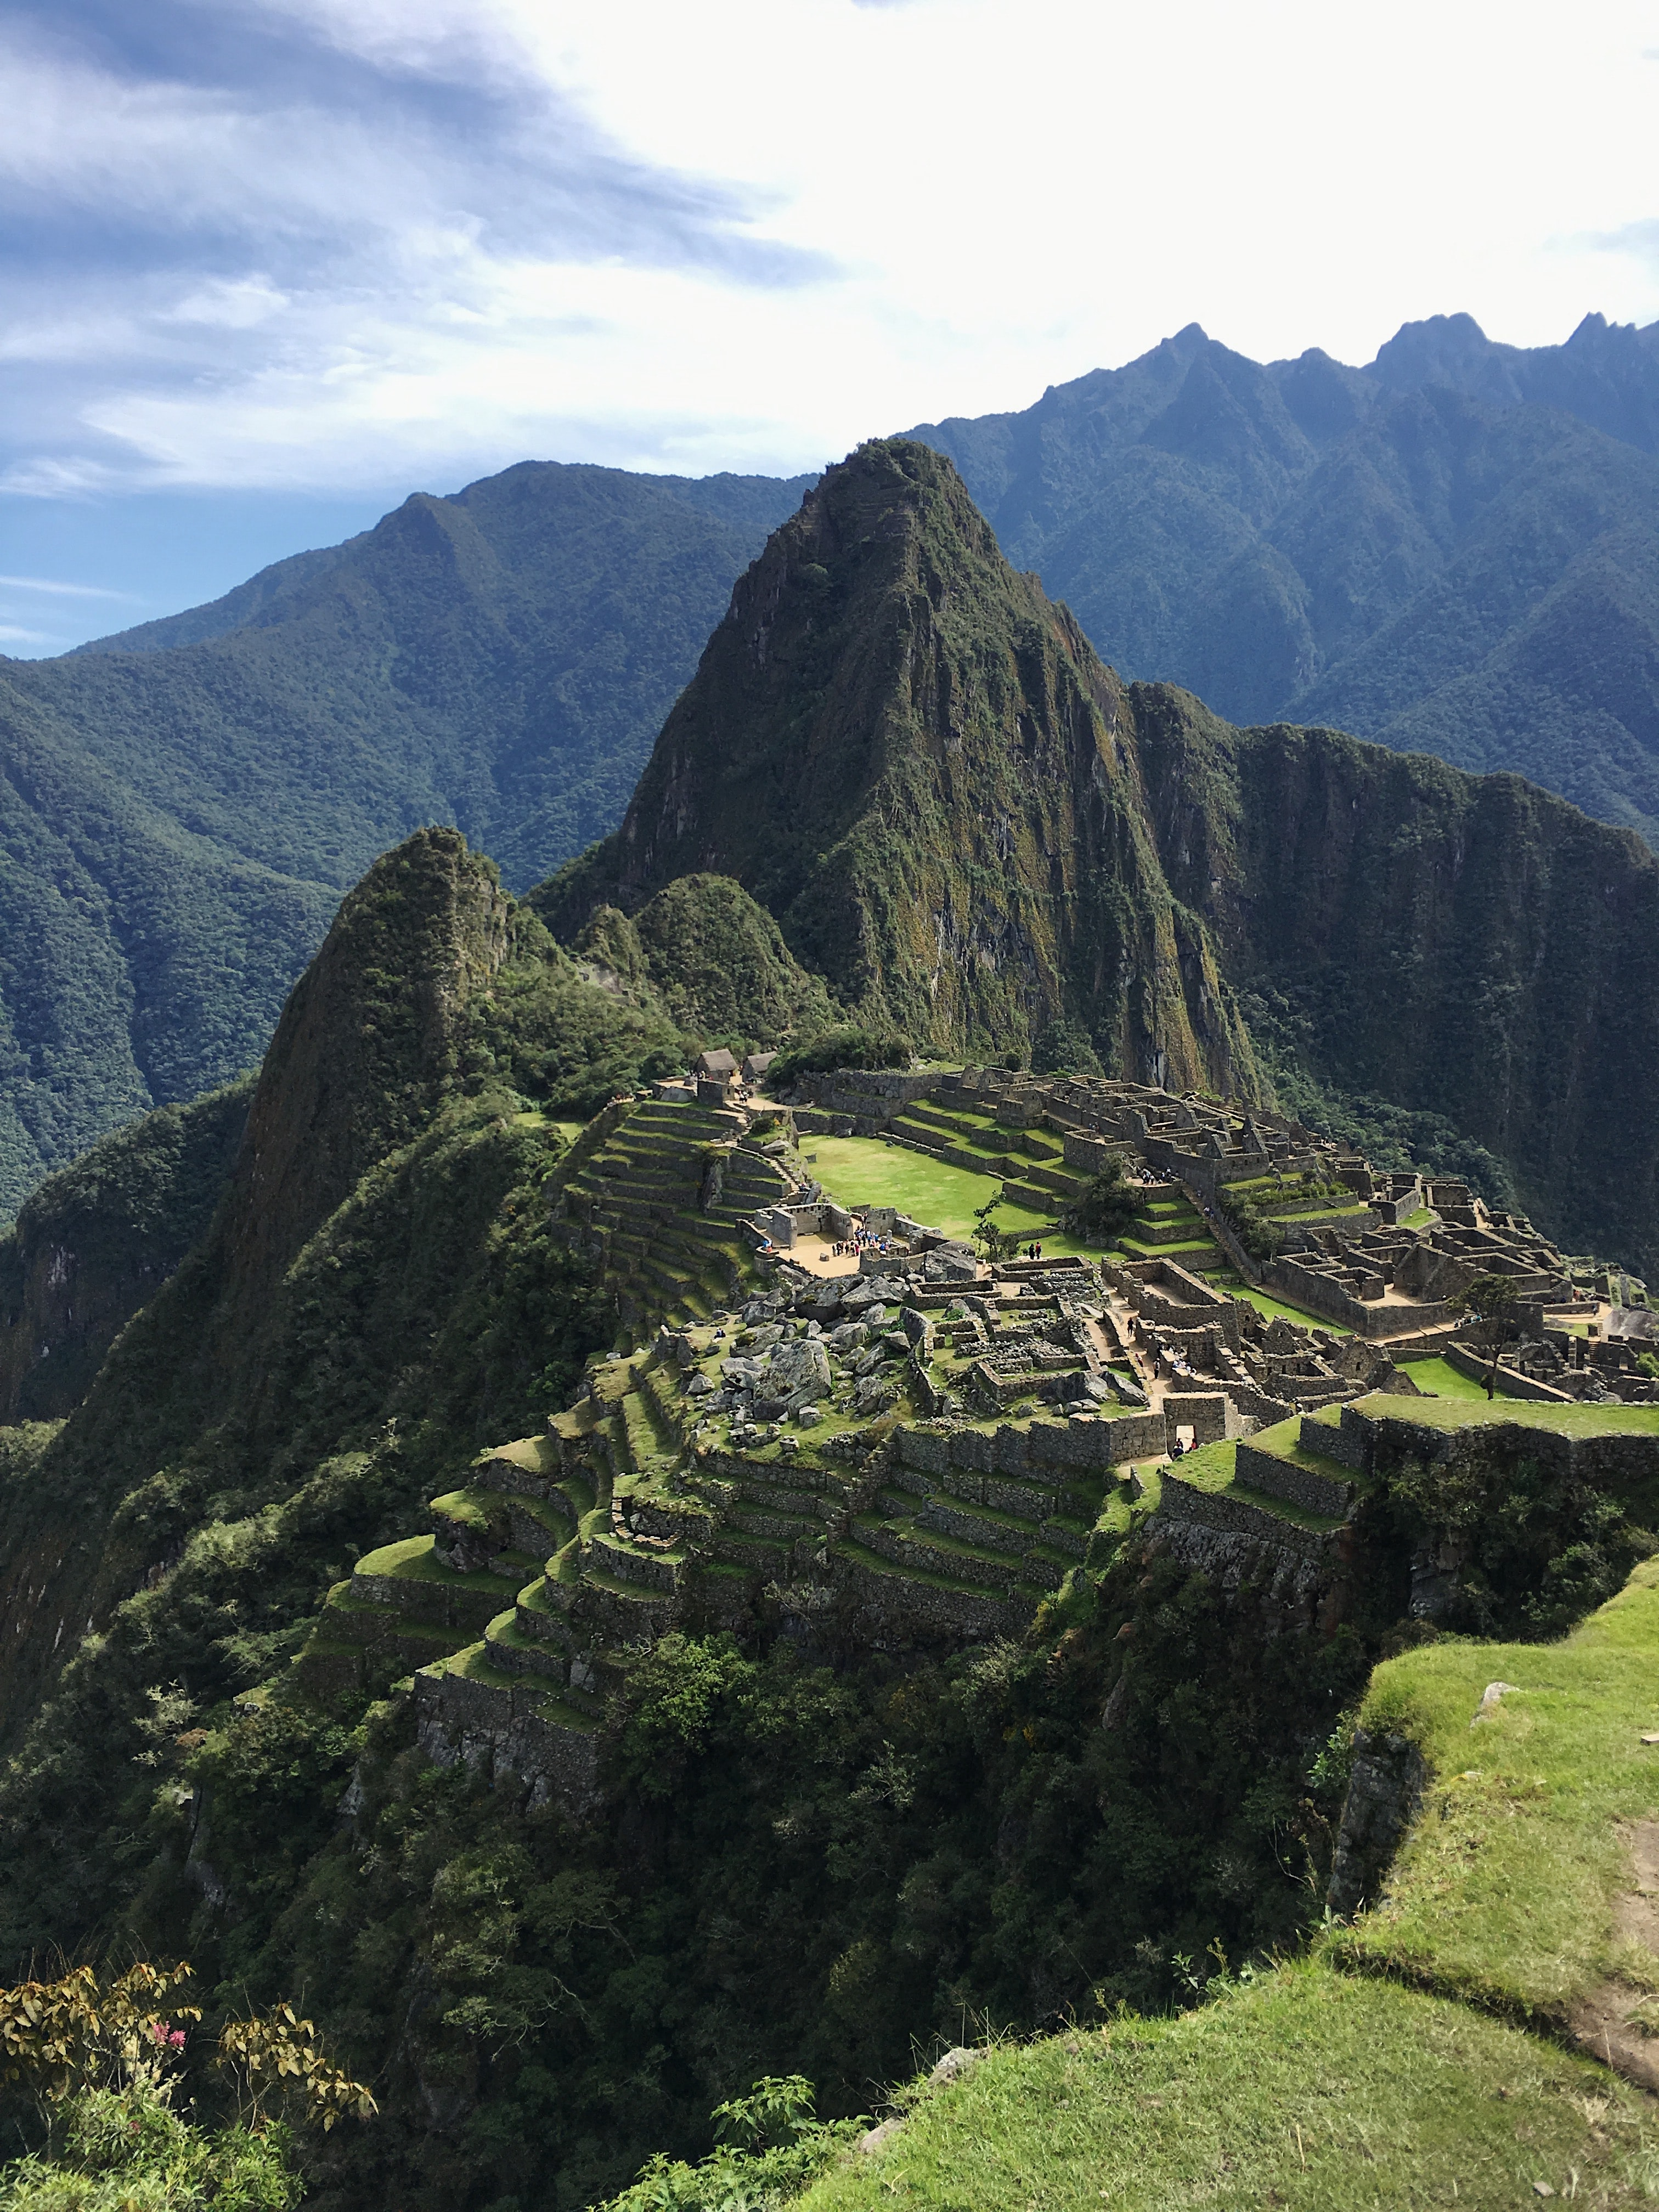 Peru Opened Machu Picchu Just for This One Tourist!